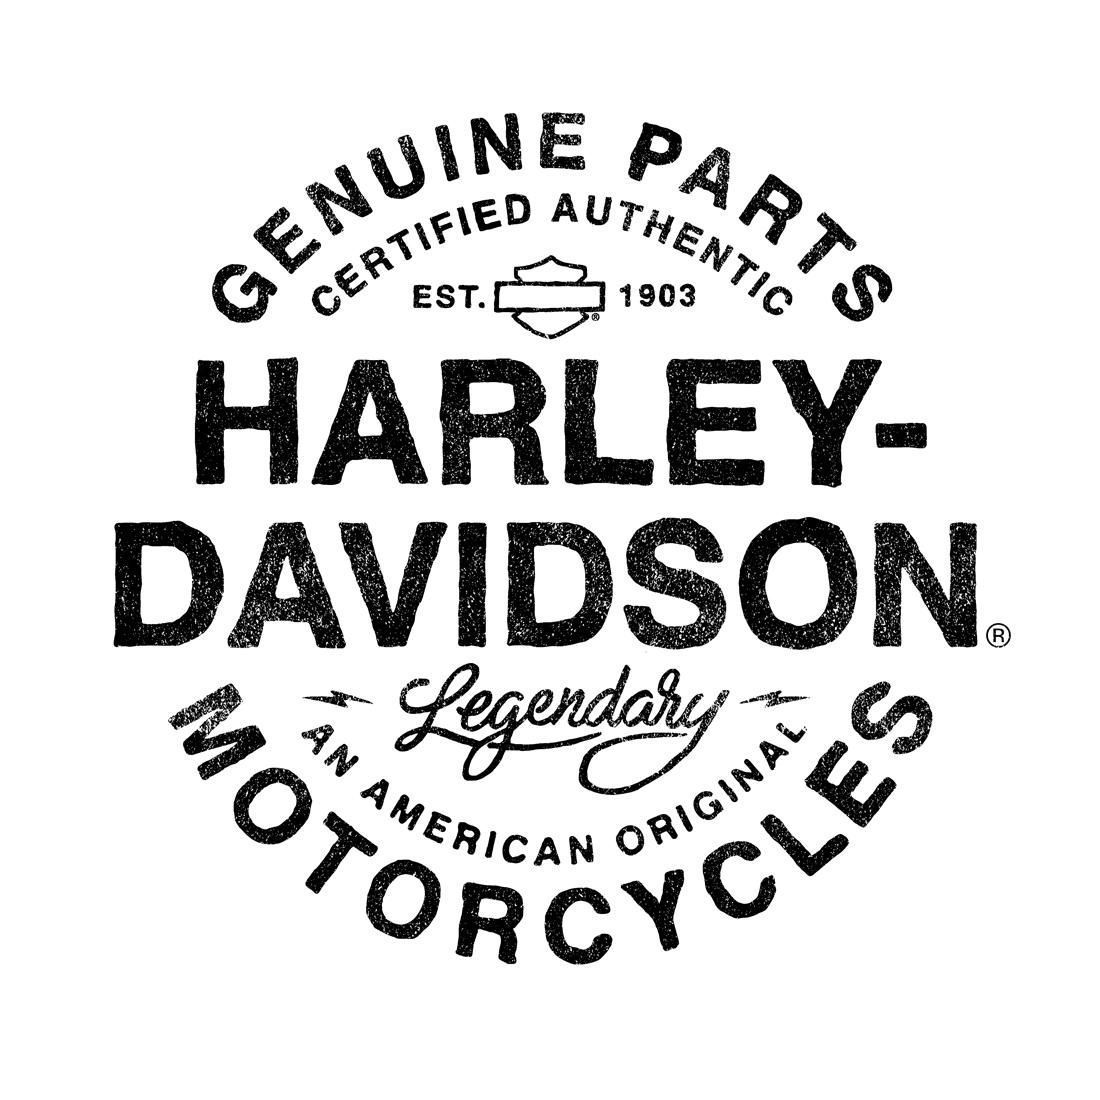 Pin By Vicent Faus On Lettering Coches In